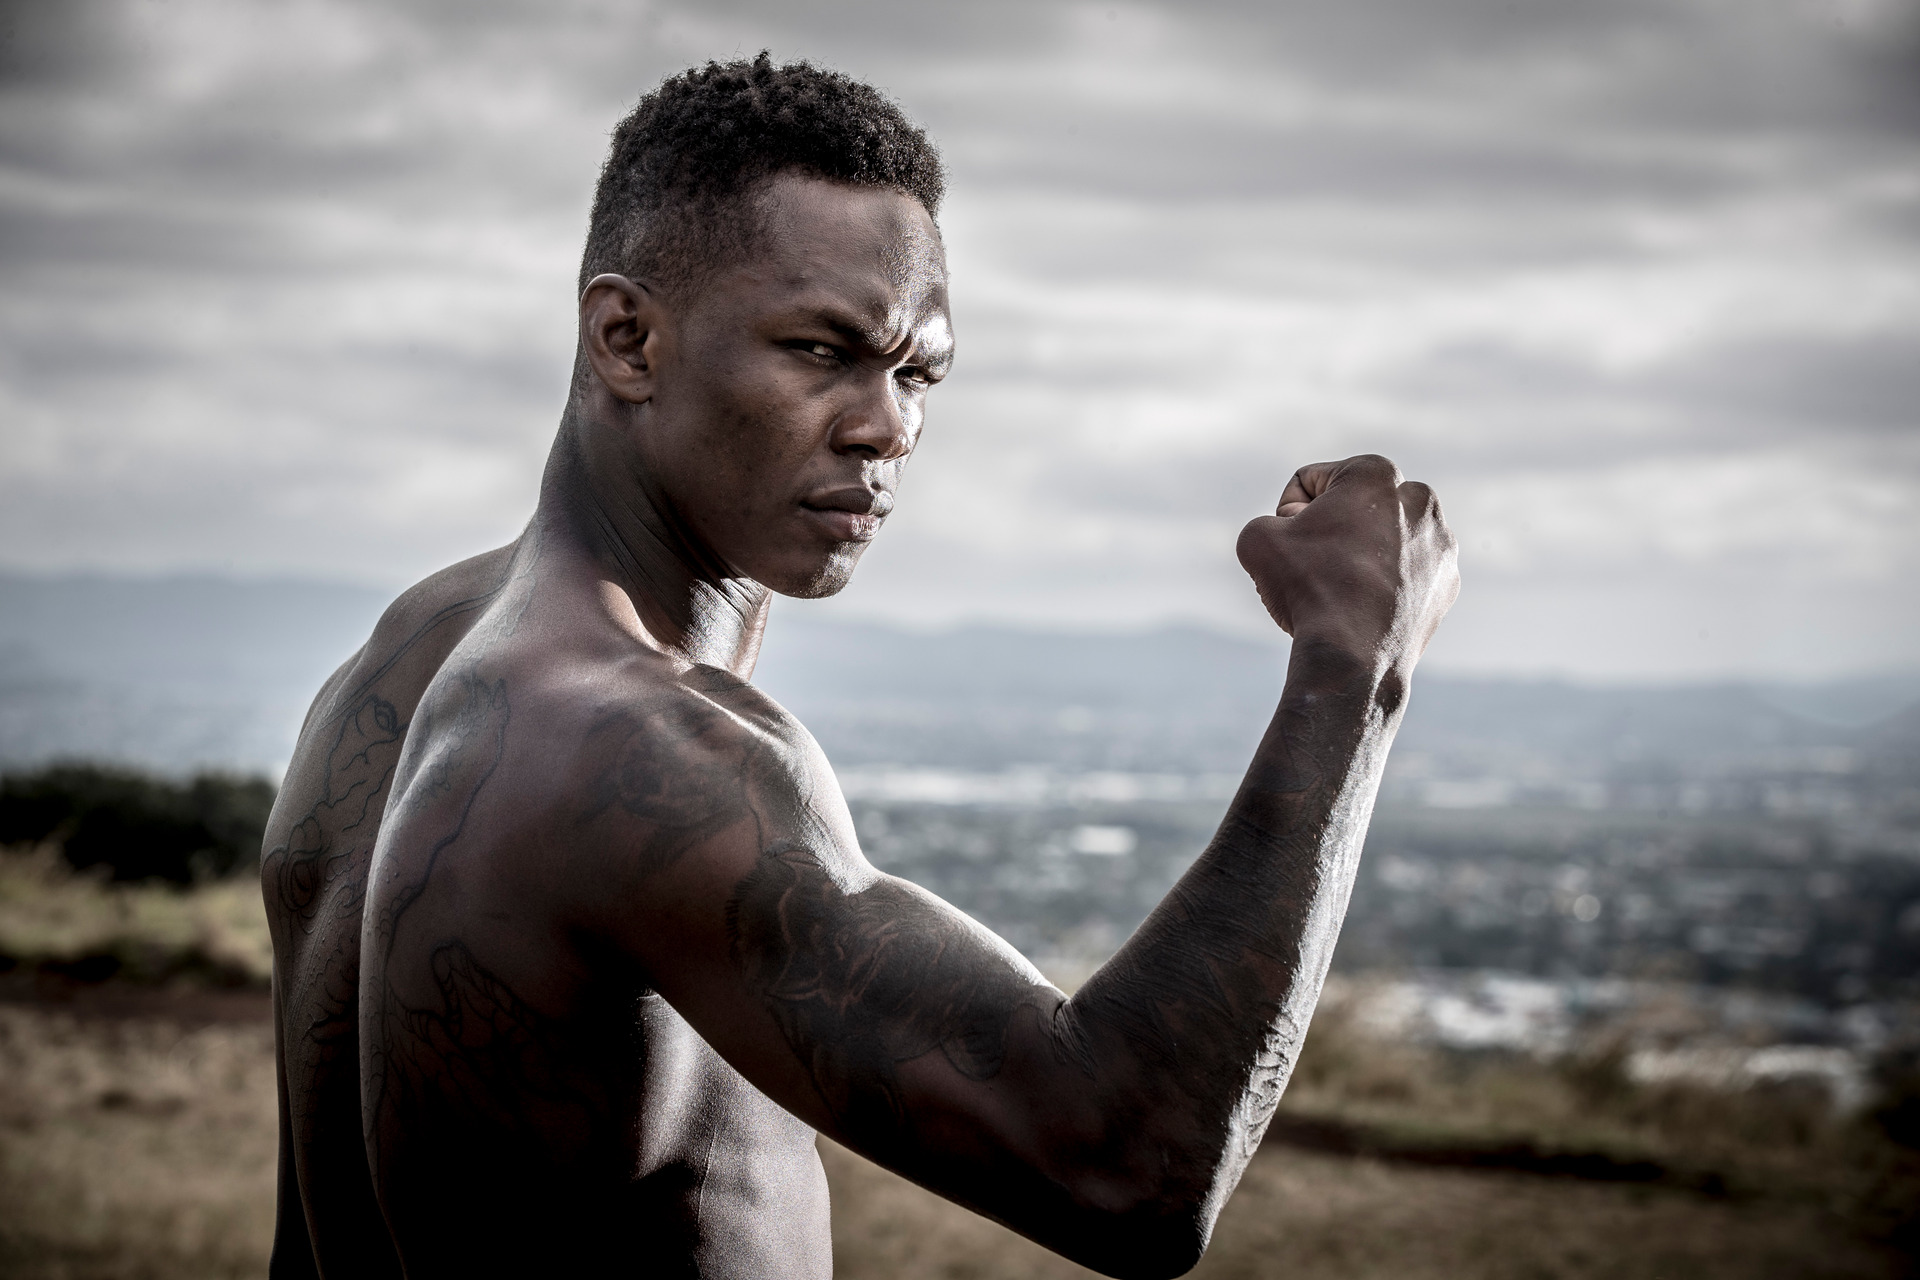 Ufc Israel Adesanya To Fight For Interim Middleweight Title